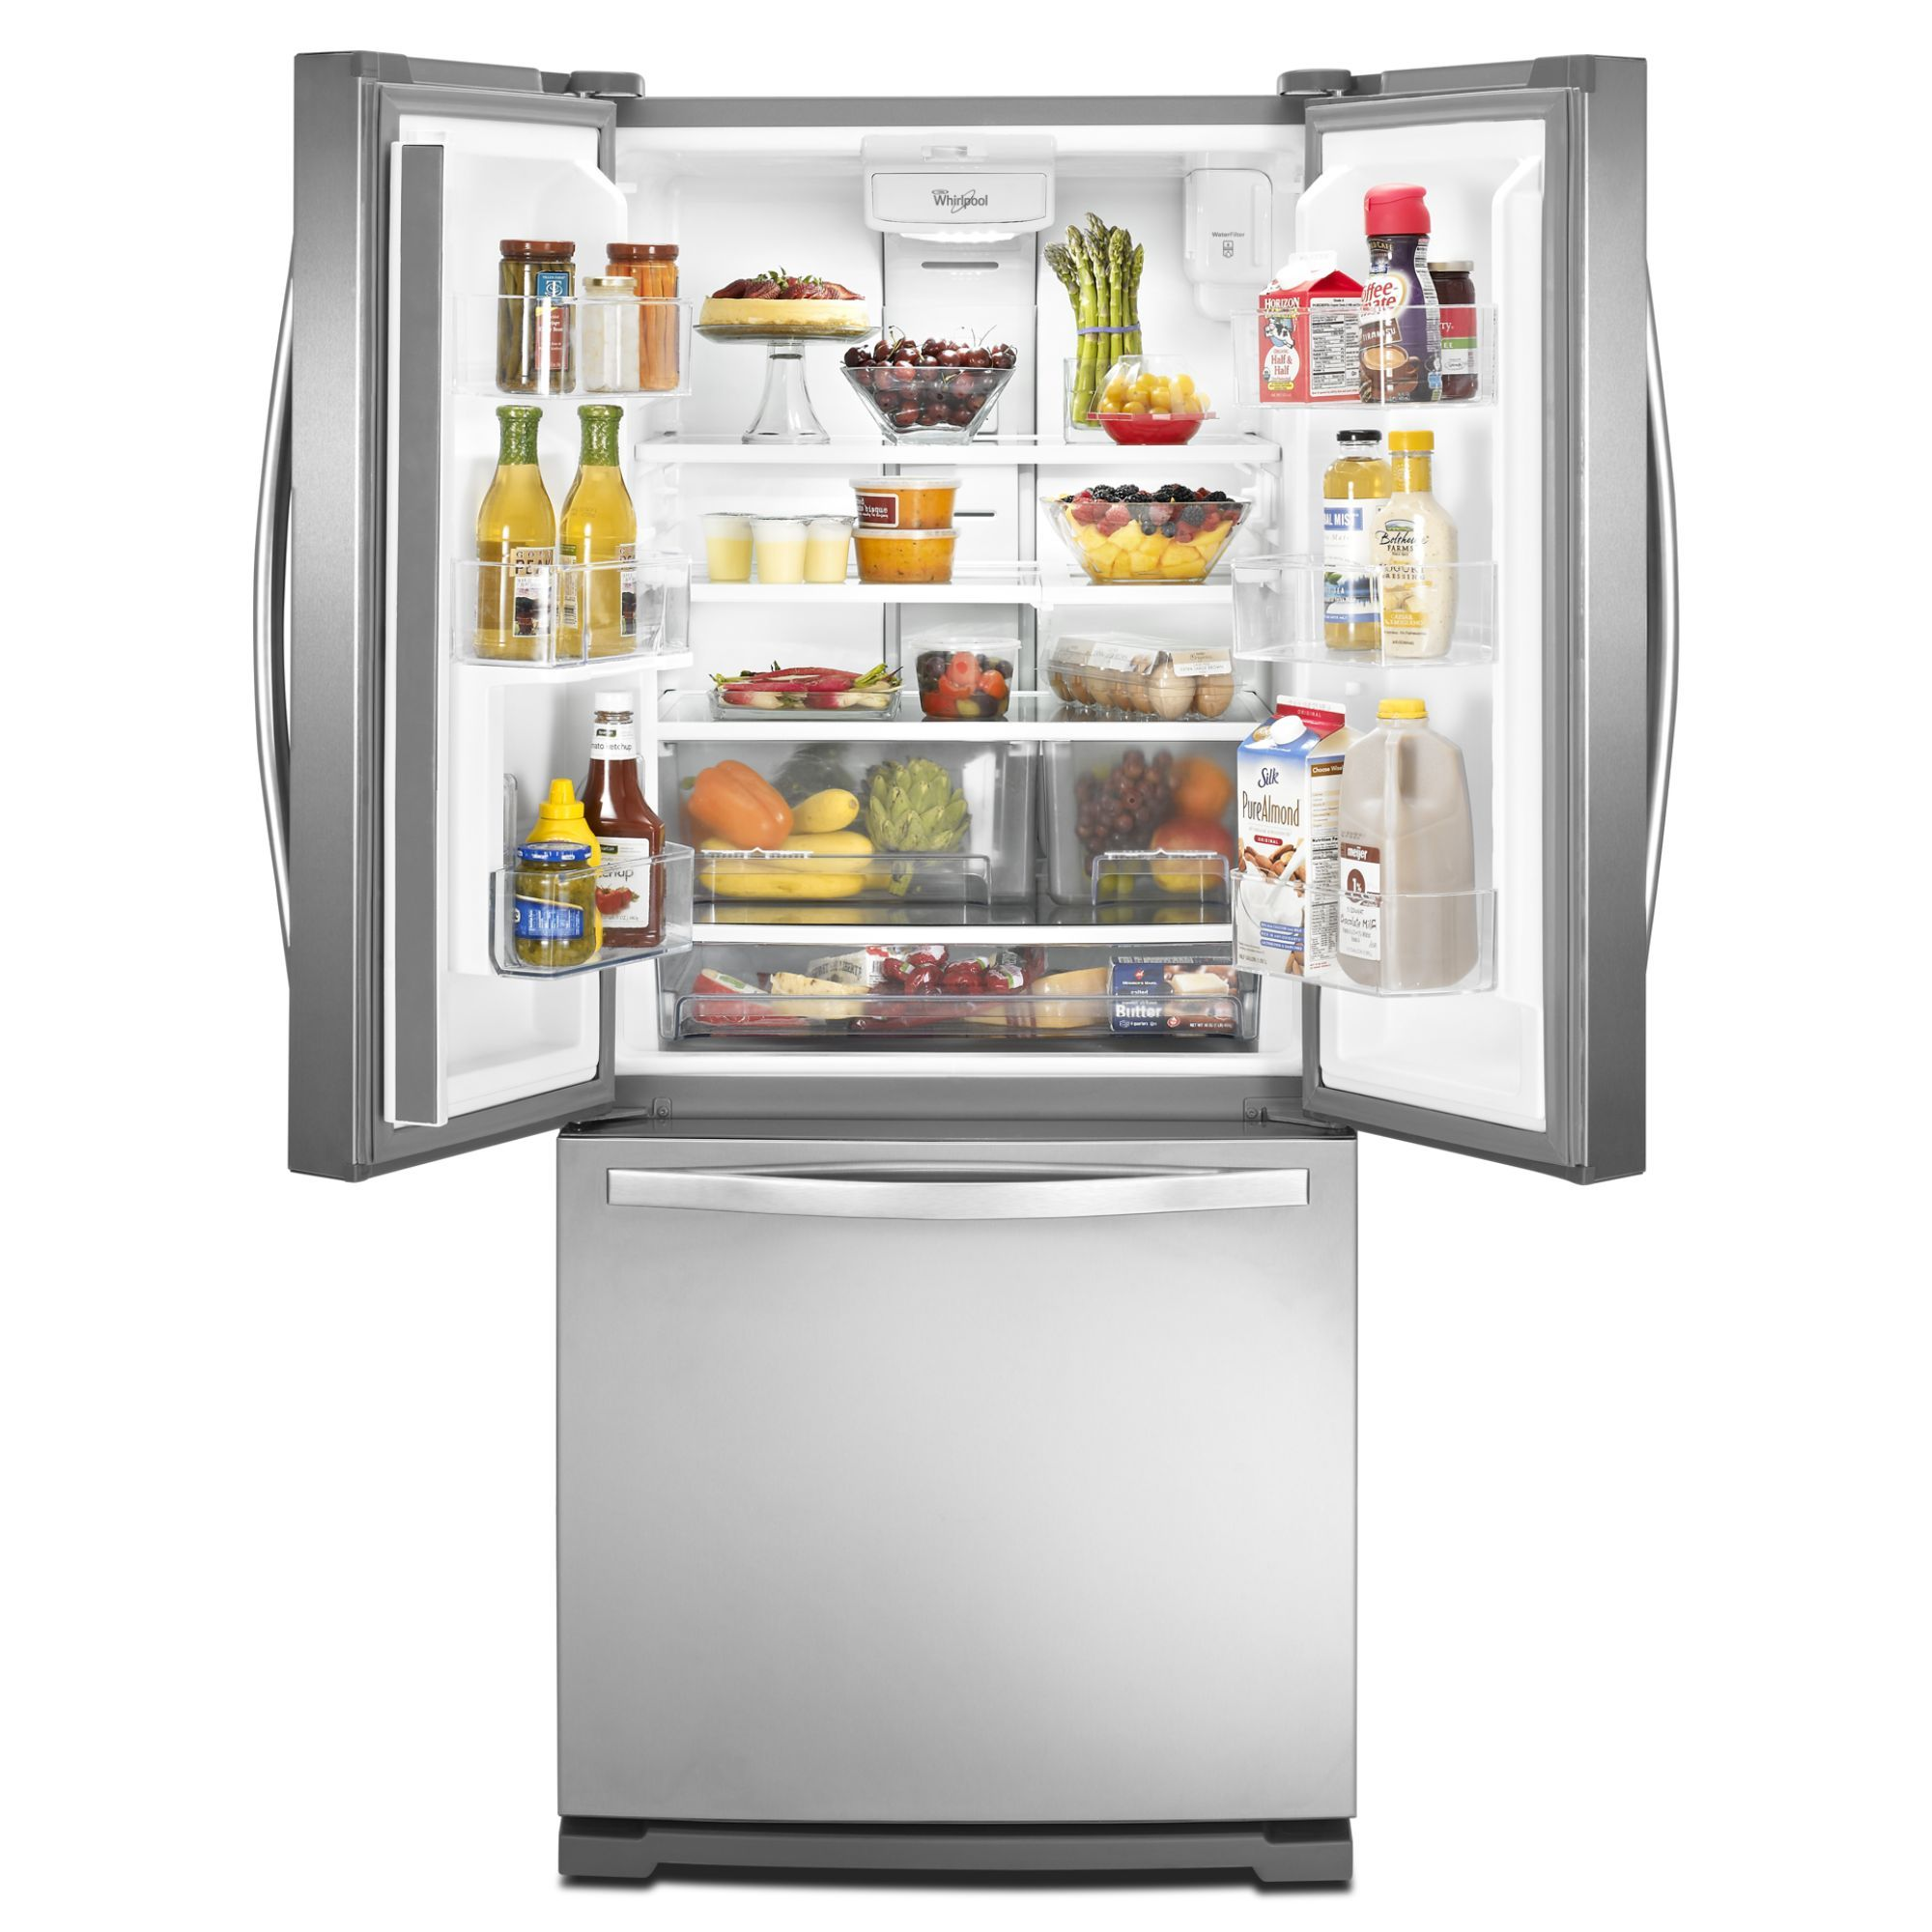 Whirlpool Wrf560seym 19 7 Cu Ft French Door Refrigerator W Exterior Dispenser Stainless Steel French Door Refrigerator French Doors Refrigerator